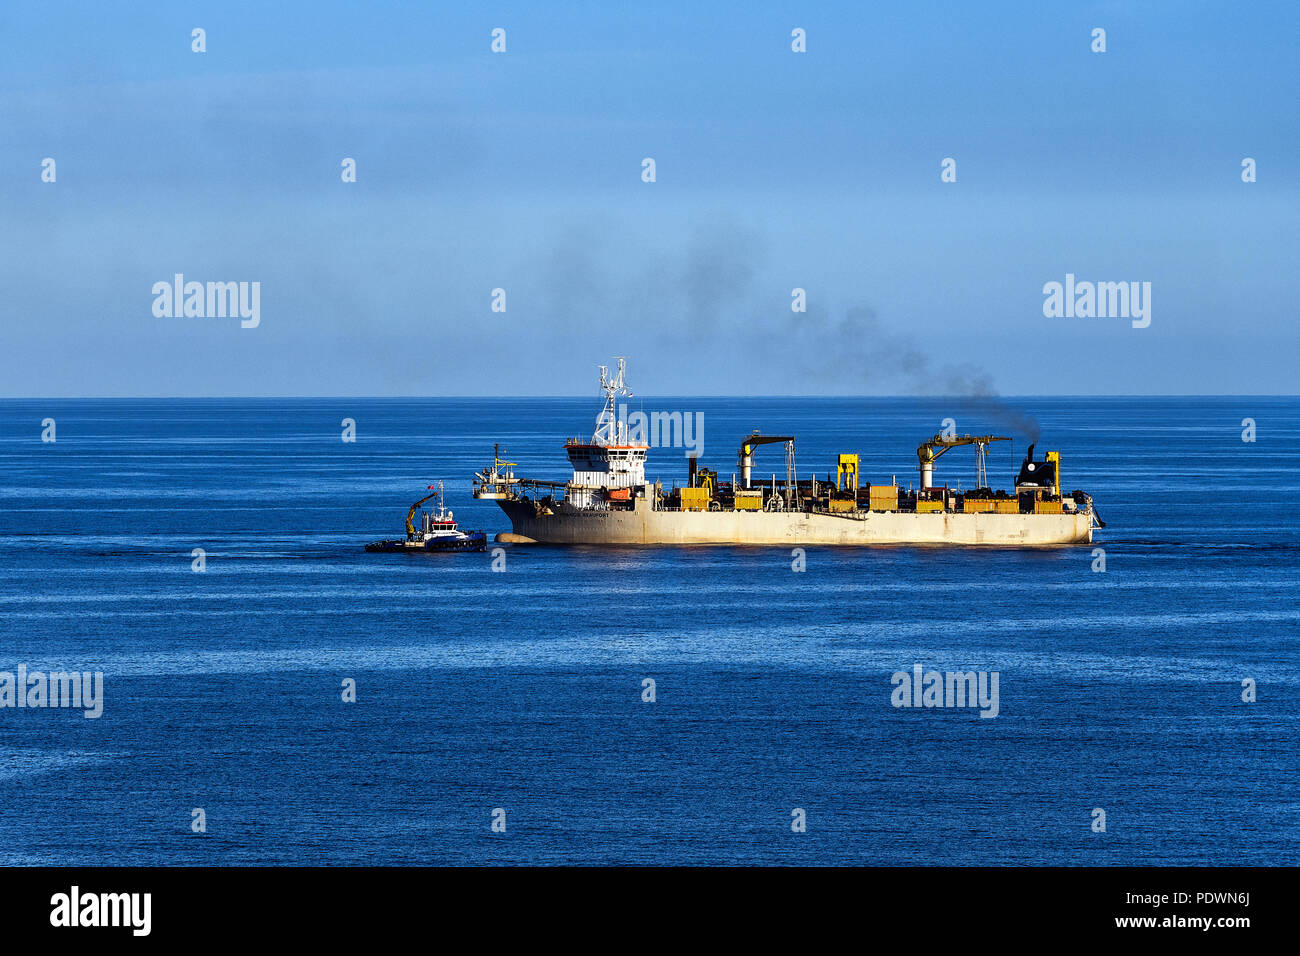 Trailing suction hopper dredger being assisted by a tug boat, Medeterranean Sea - Stock Image